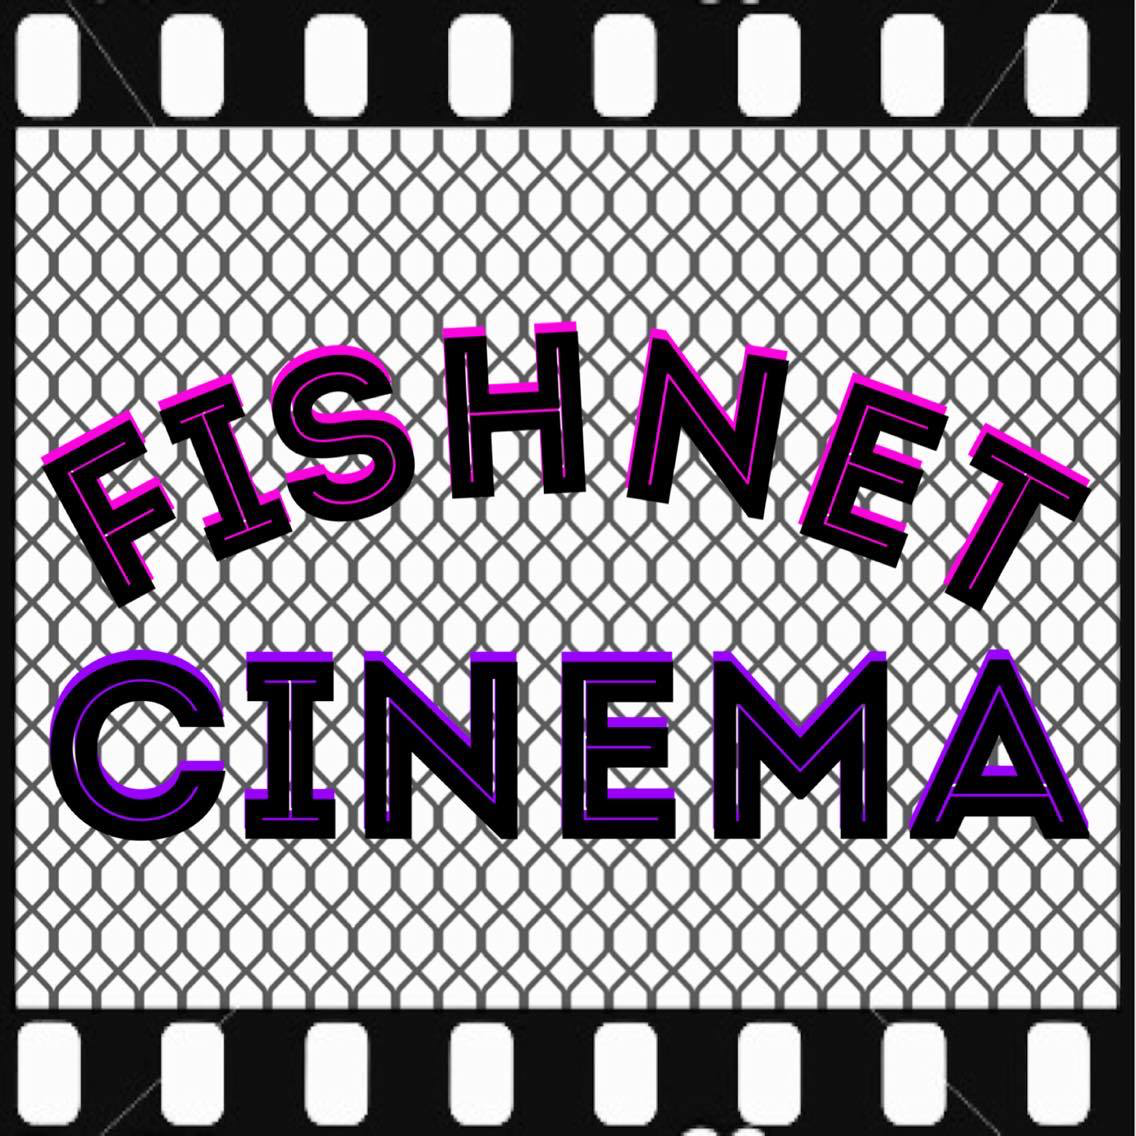 fishnet cinema